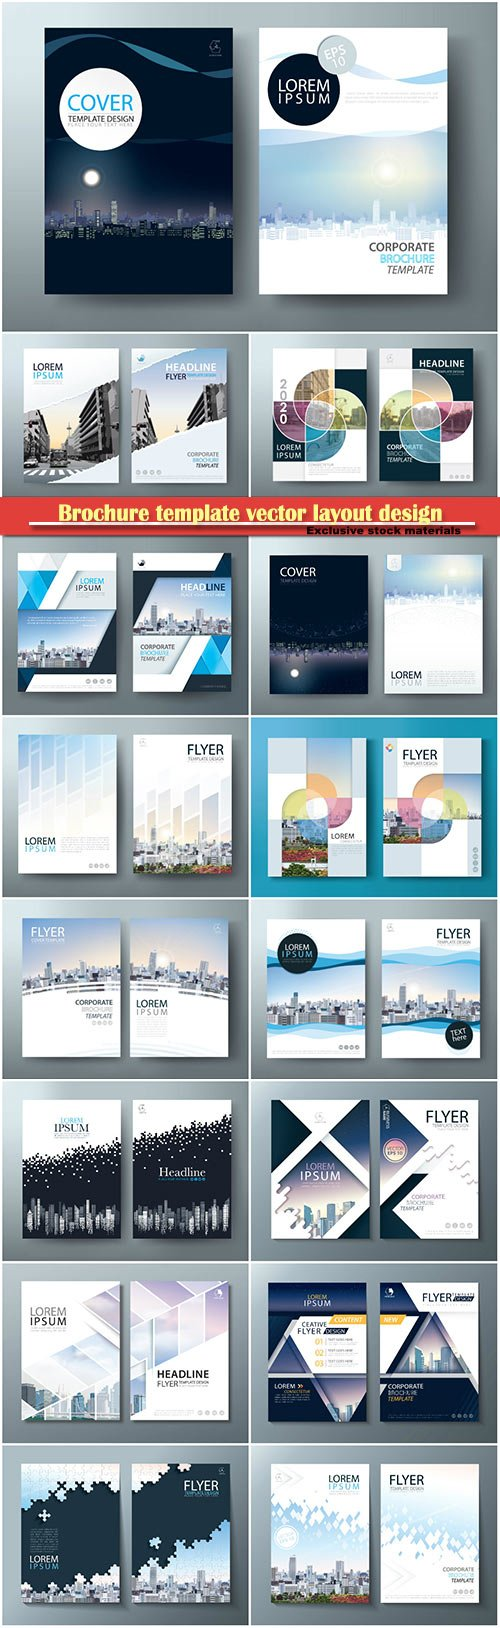 Brochure template vector layout design, corporate business annual report, magazine, flyer mockup # 208